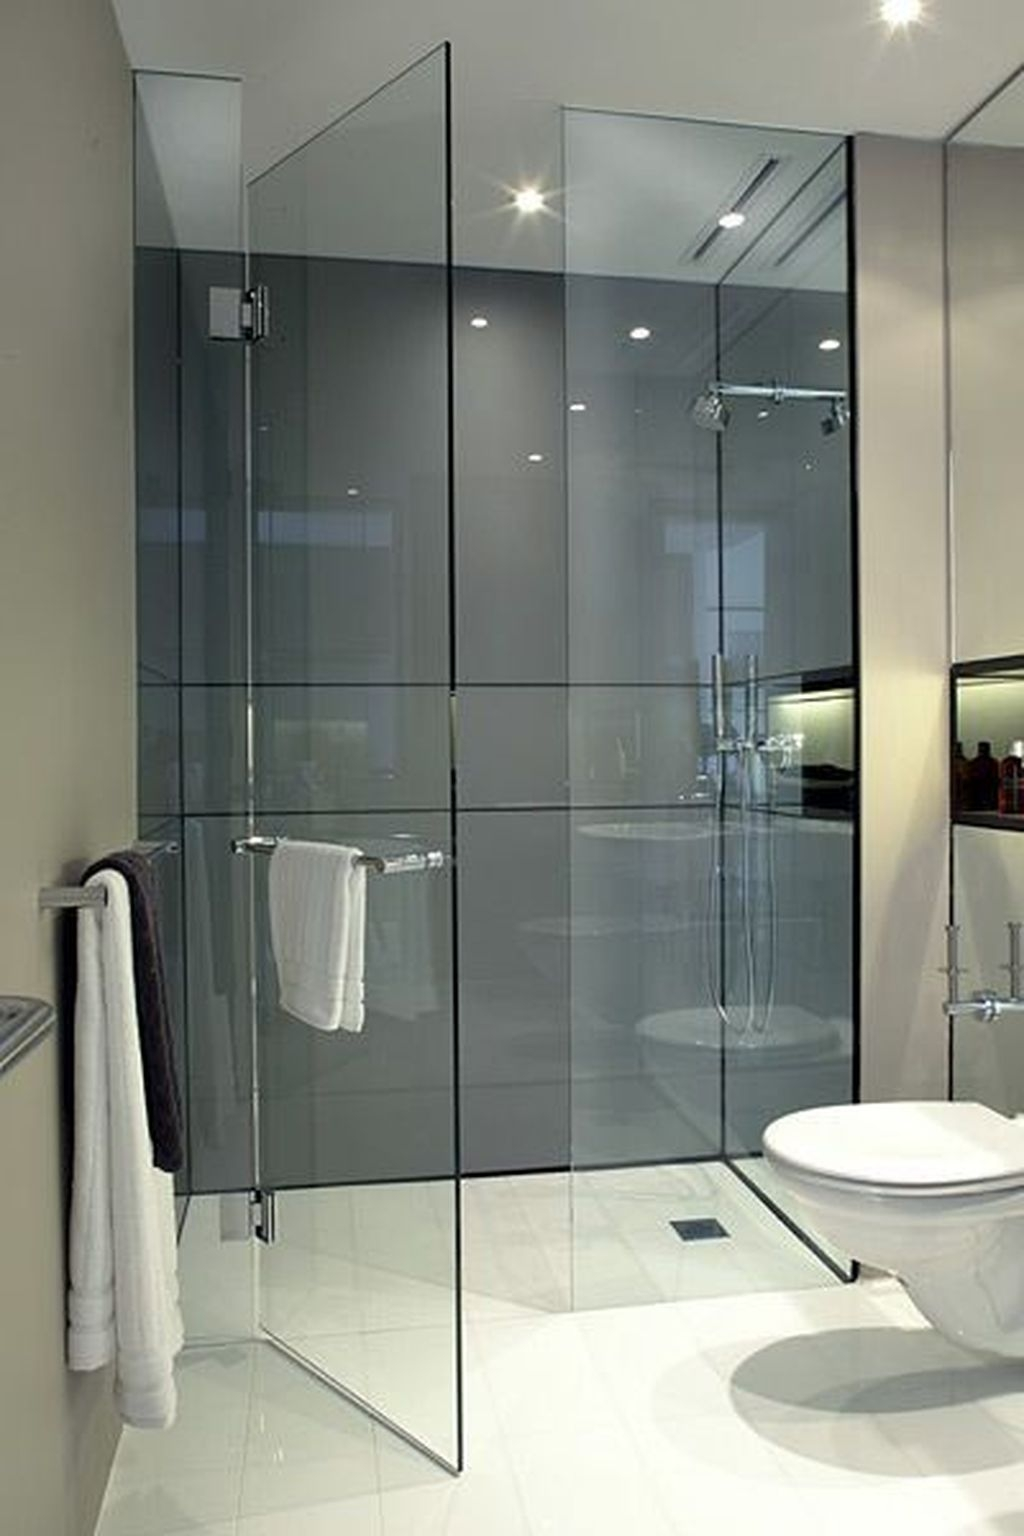 Incredible Curbless Shower Ideas For House20